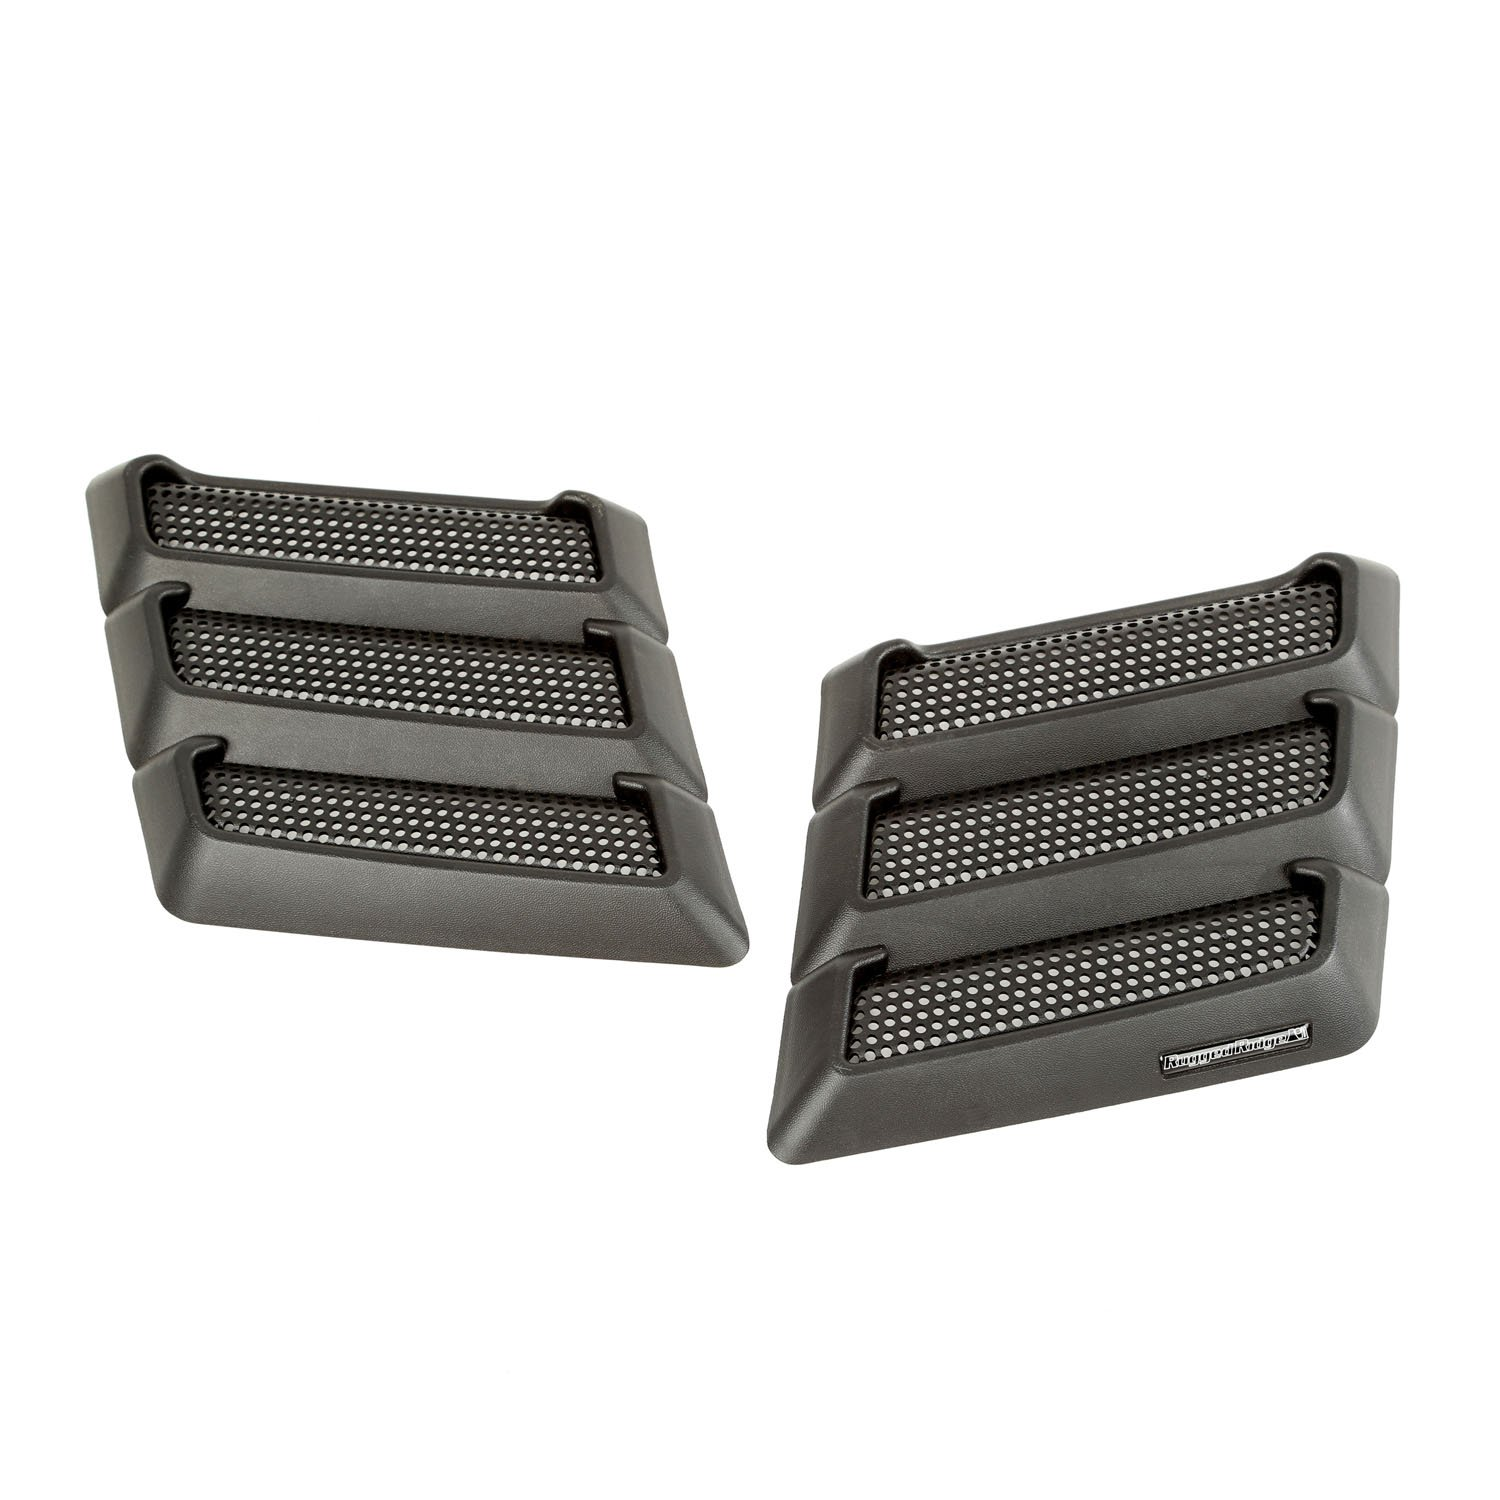 Rugged Ridge 17759.09 Black Performance Hood Vent for Jeep JK Wrangler by Rugged Ridge (Image #1)